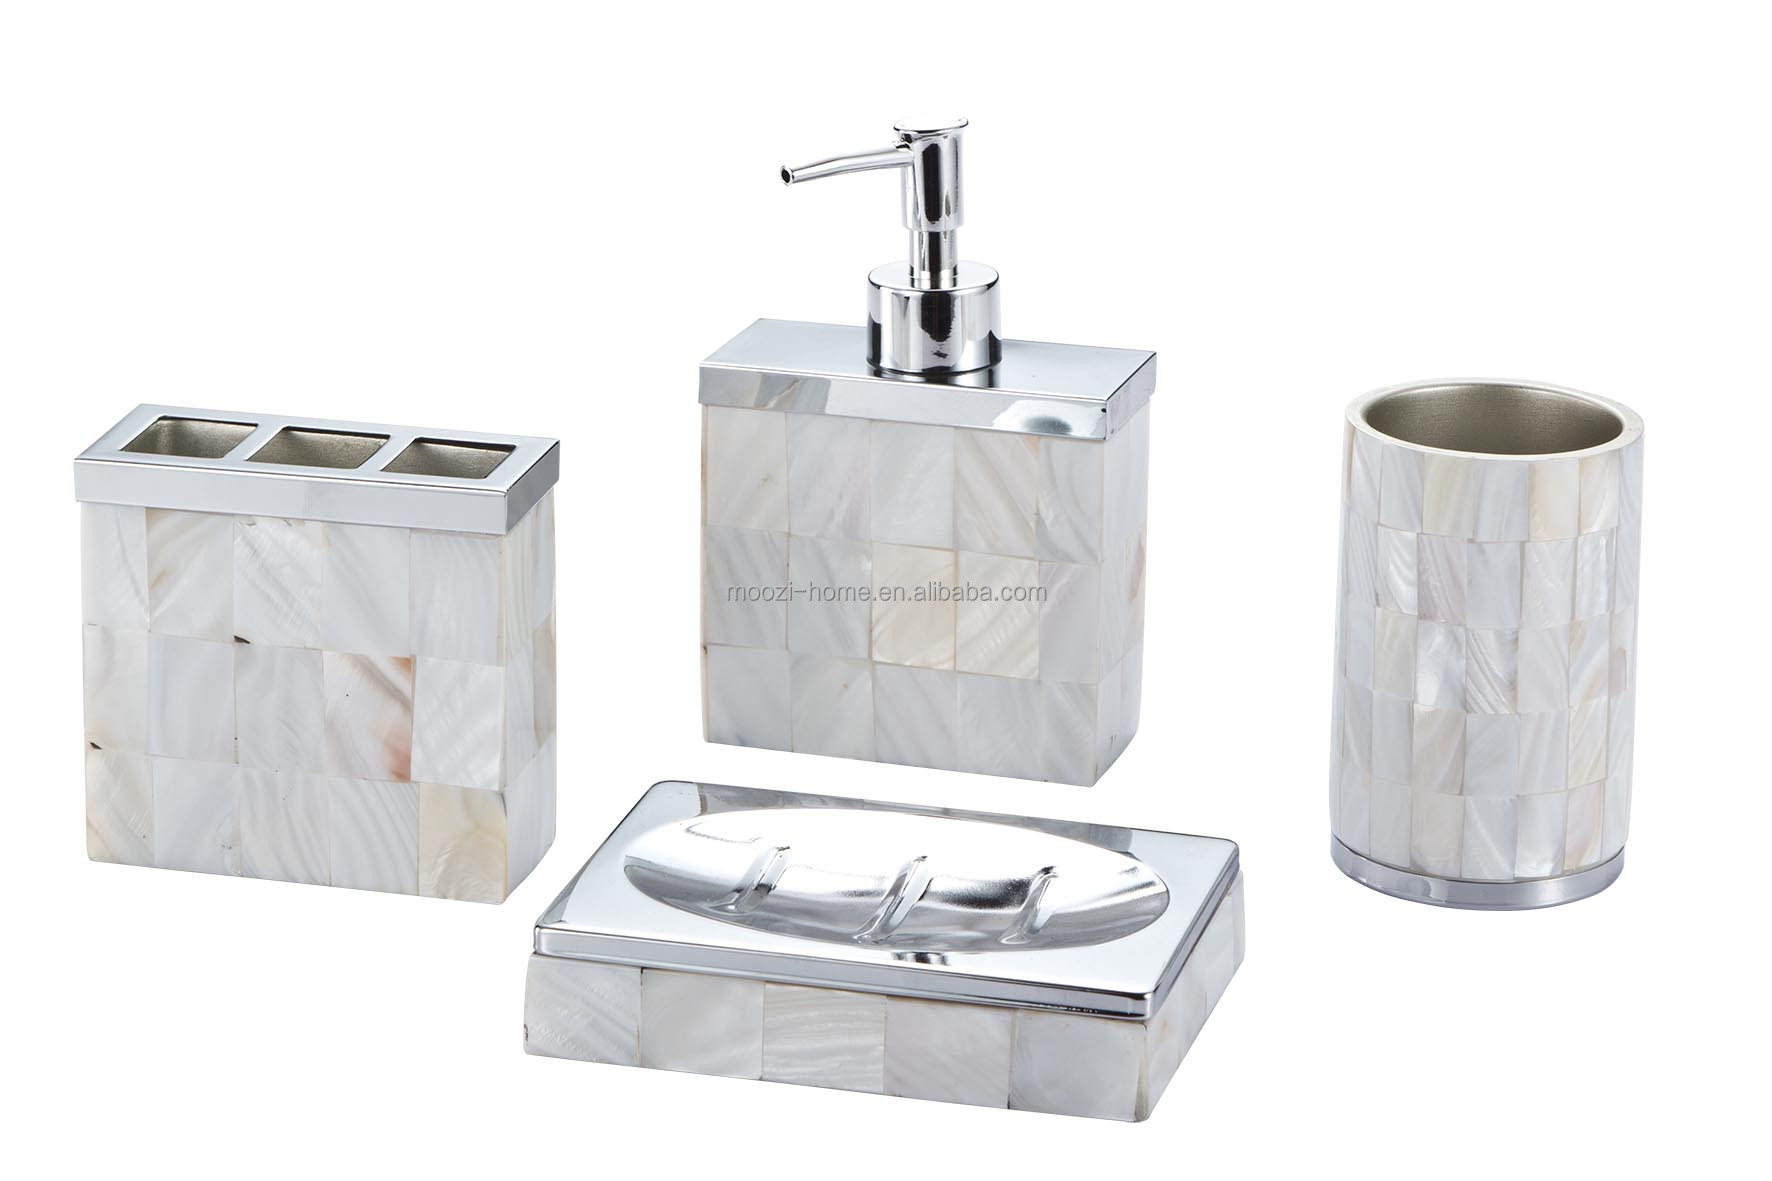 Silvery stone like resin bathroom set soap dispenser buy for Toilet accessories